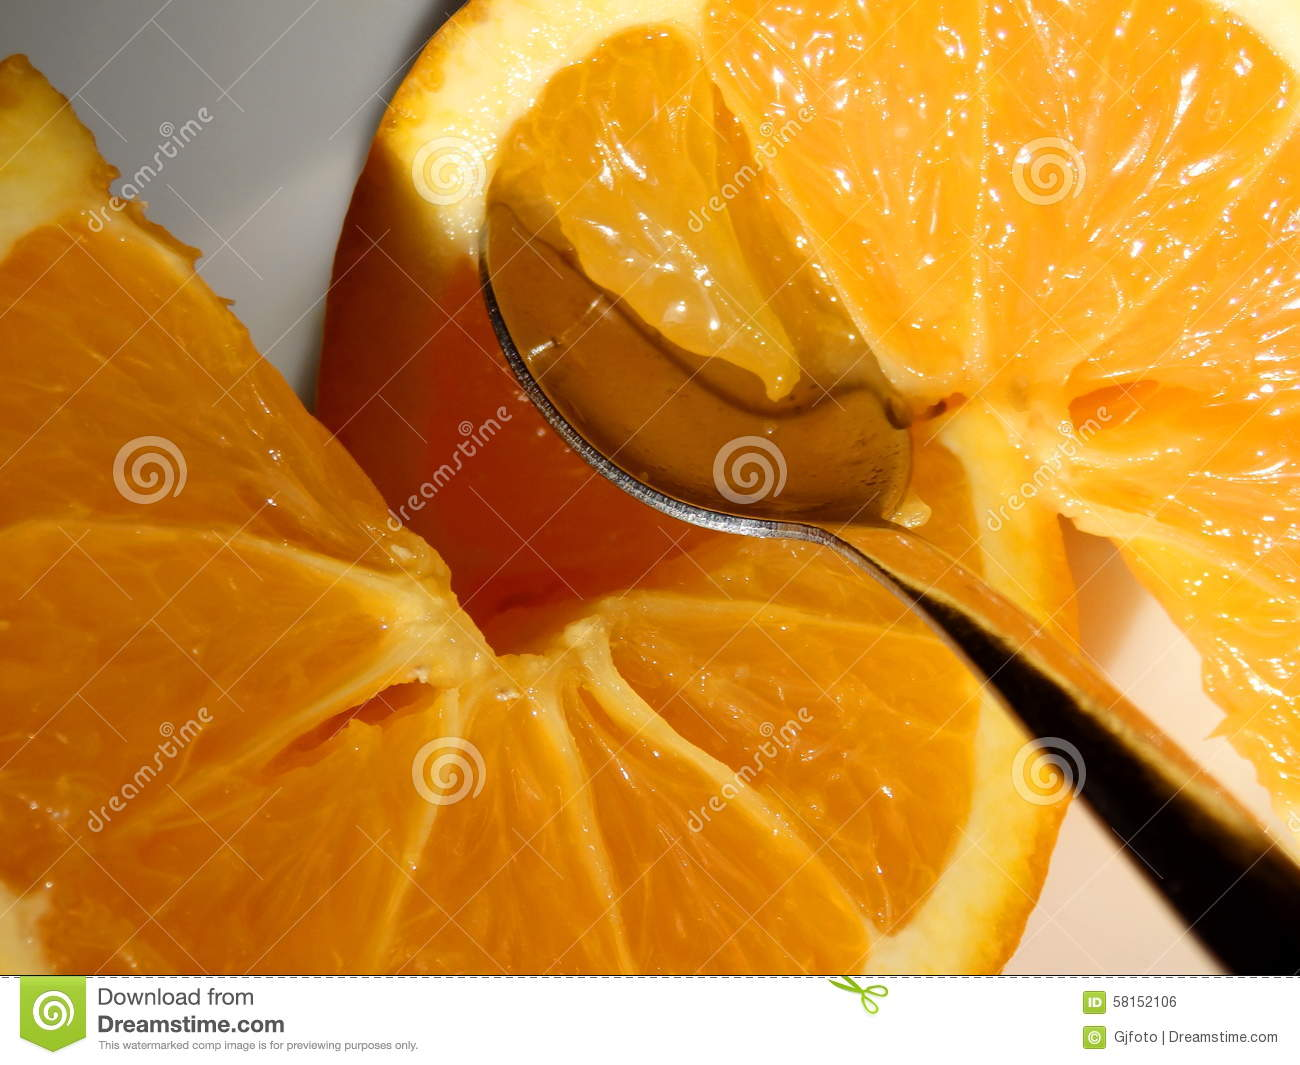 parts of an orange fruit diagram explain schematic and wiring diagrams is cut into two royalty free stock